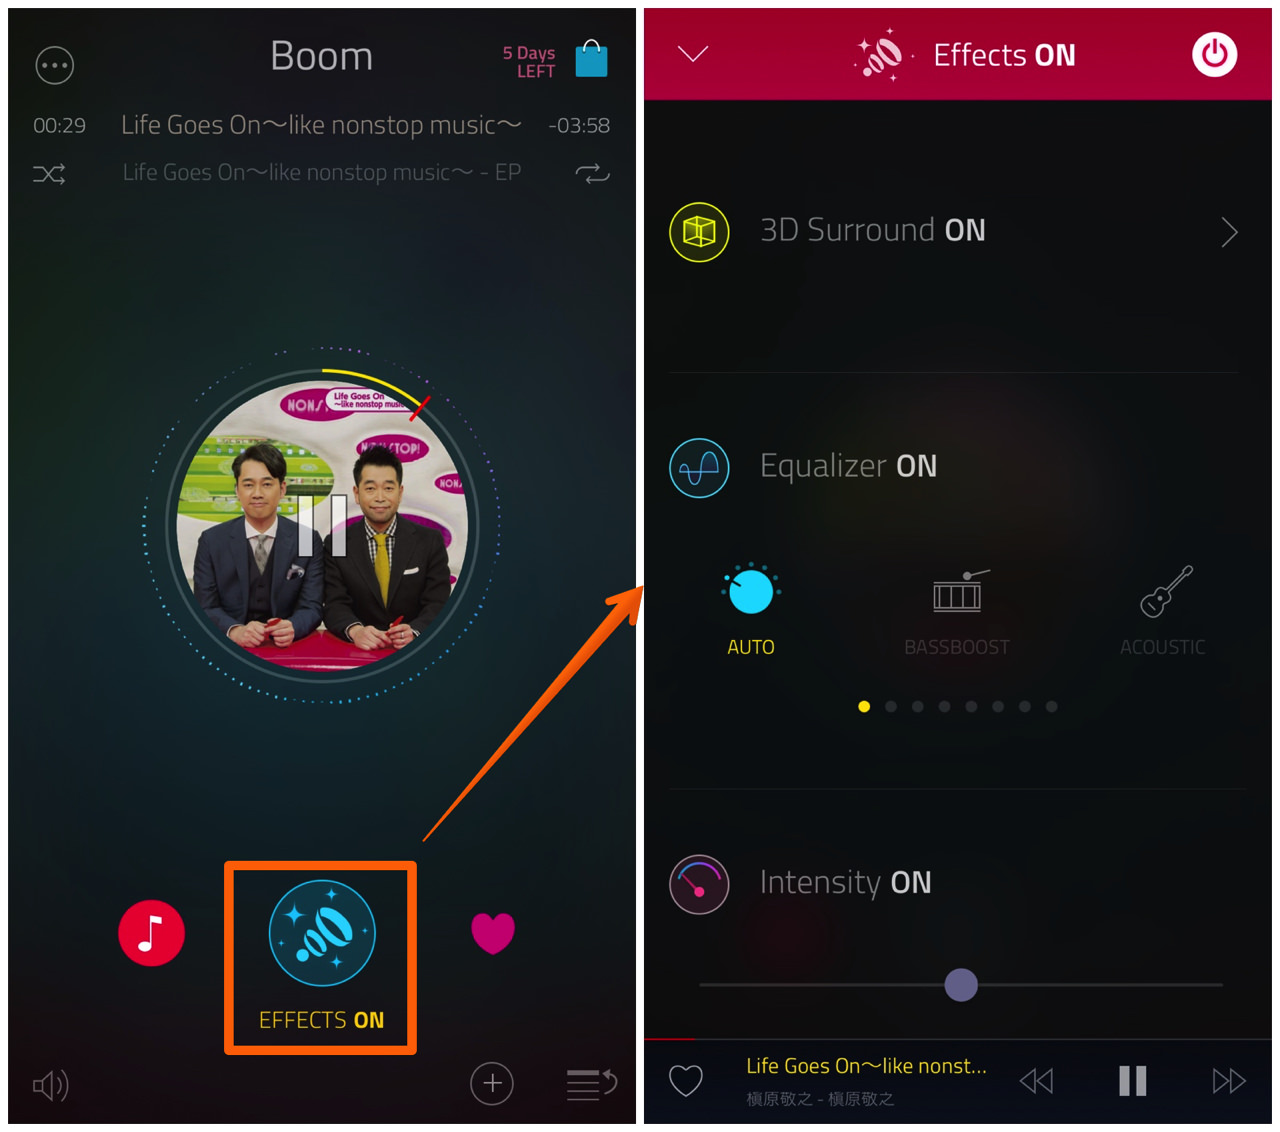 Boom music player with magical surround sound3